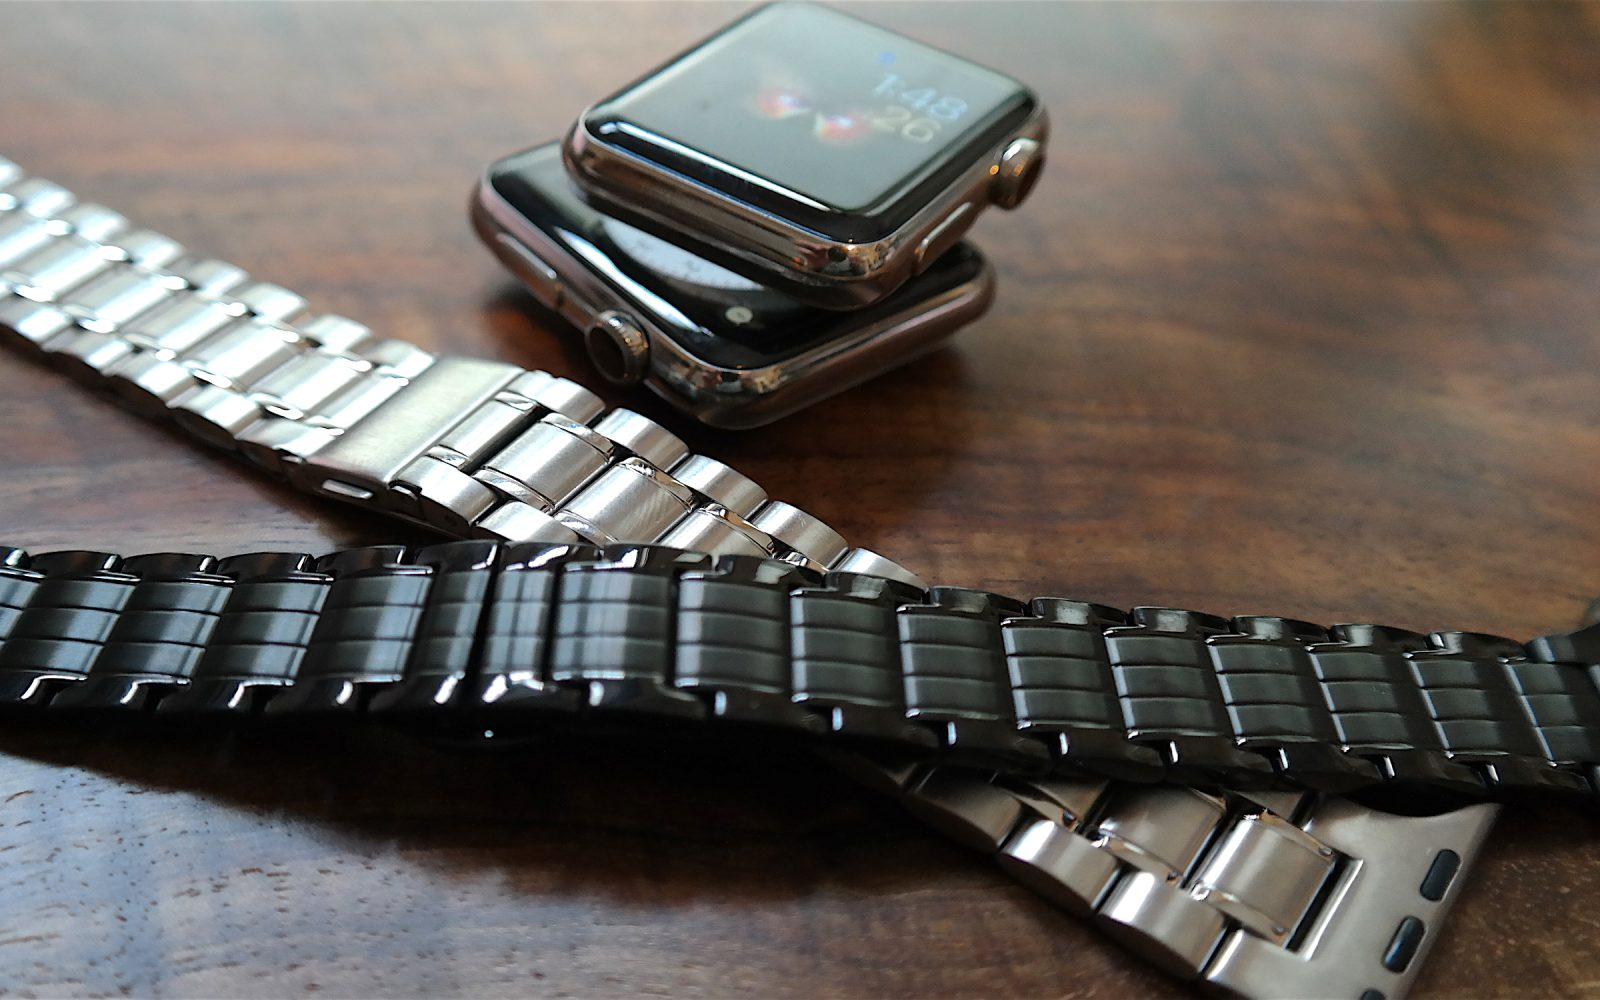 a65690074a35f Review: Hyper's $69 stainless steel Apple Watch bands in silver ...